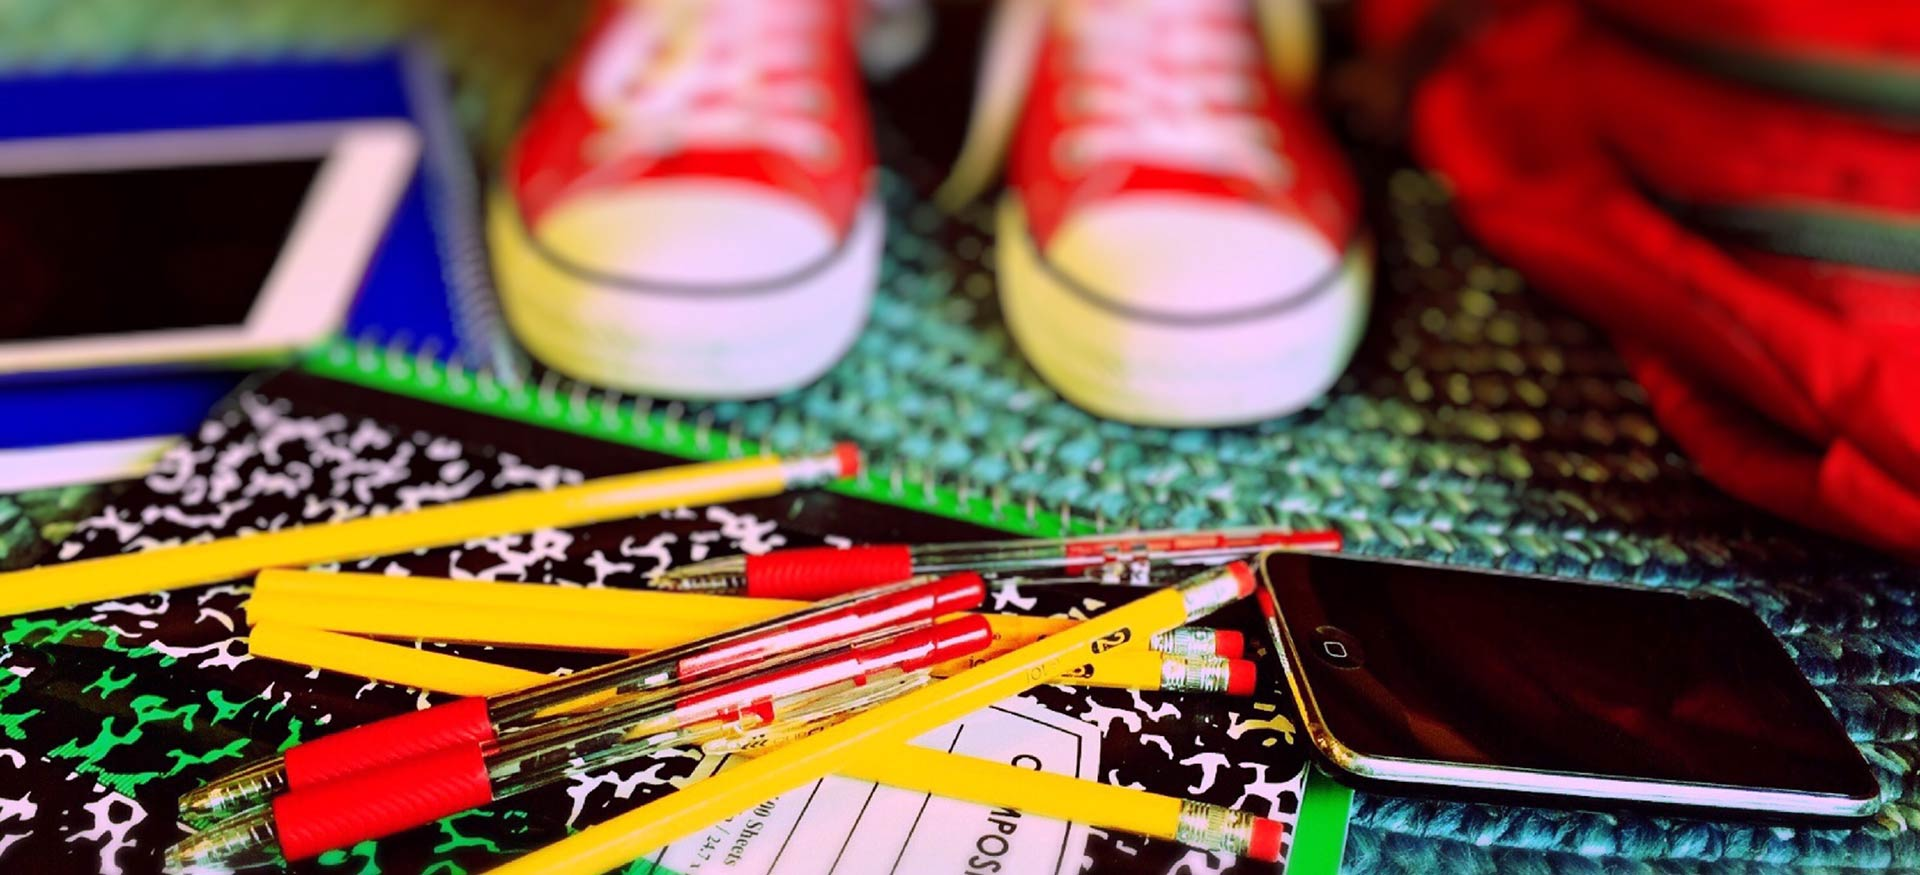 Annual Full Day, Half Day and Holiday Care | ClevaMe Academy's Fees